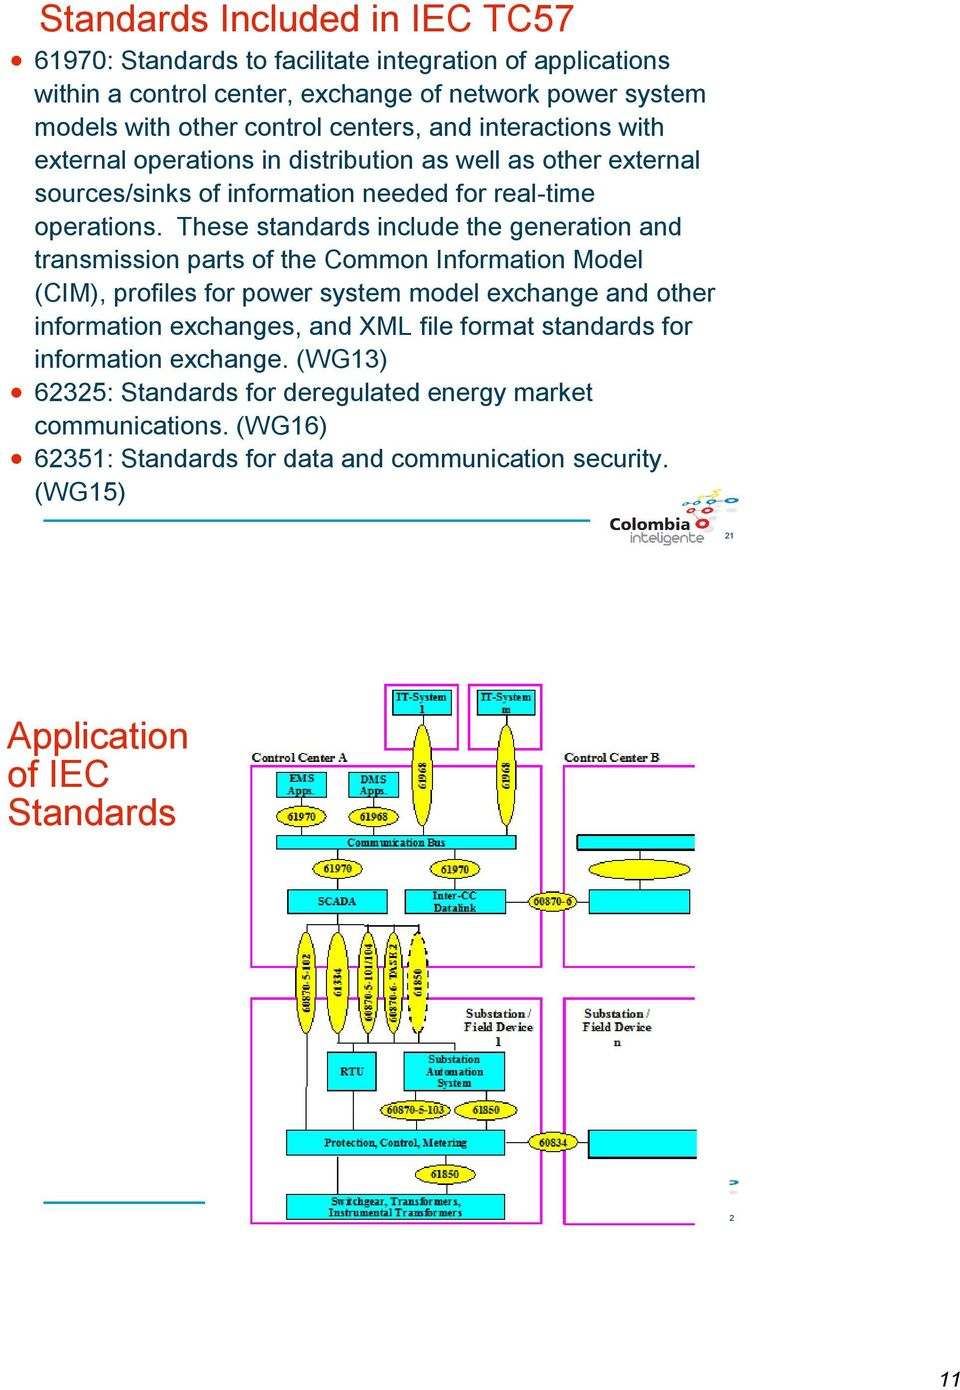 These standards include the generation and transmission parts of the Common Information Model (CIM), profiles for power system model exchange and other information exchanges, and XML